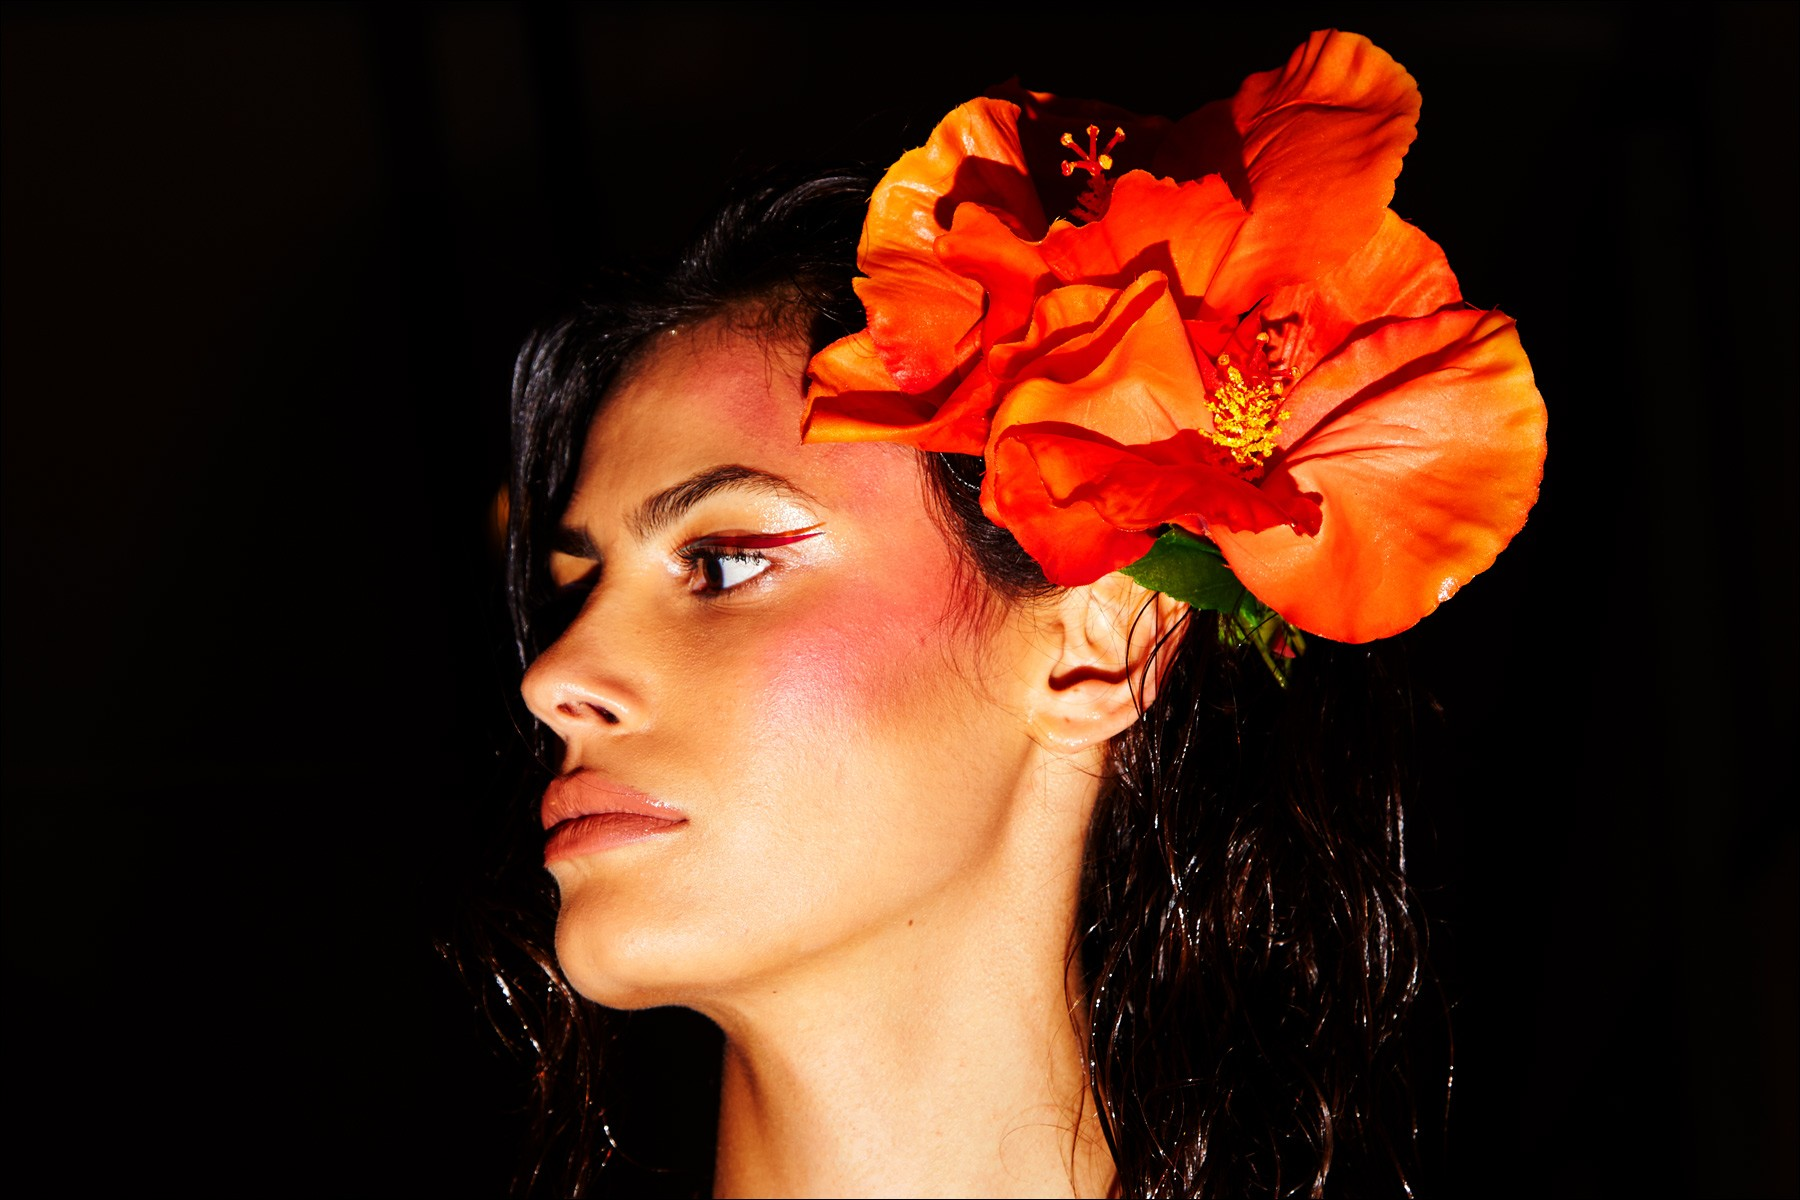 Model with orange flower, backstage at The Blonds for Spring/Summer 2018. Photographed by Alexander Thompson for Ponyboy magazine NY.